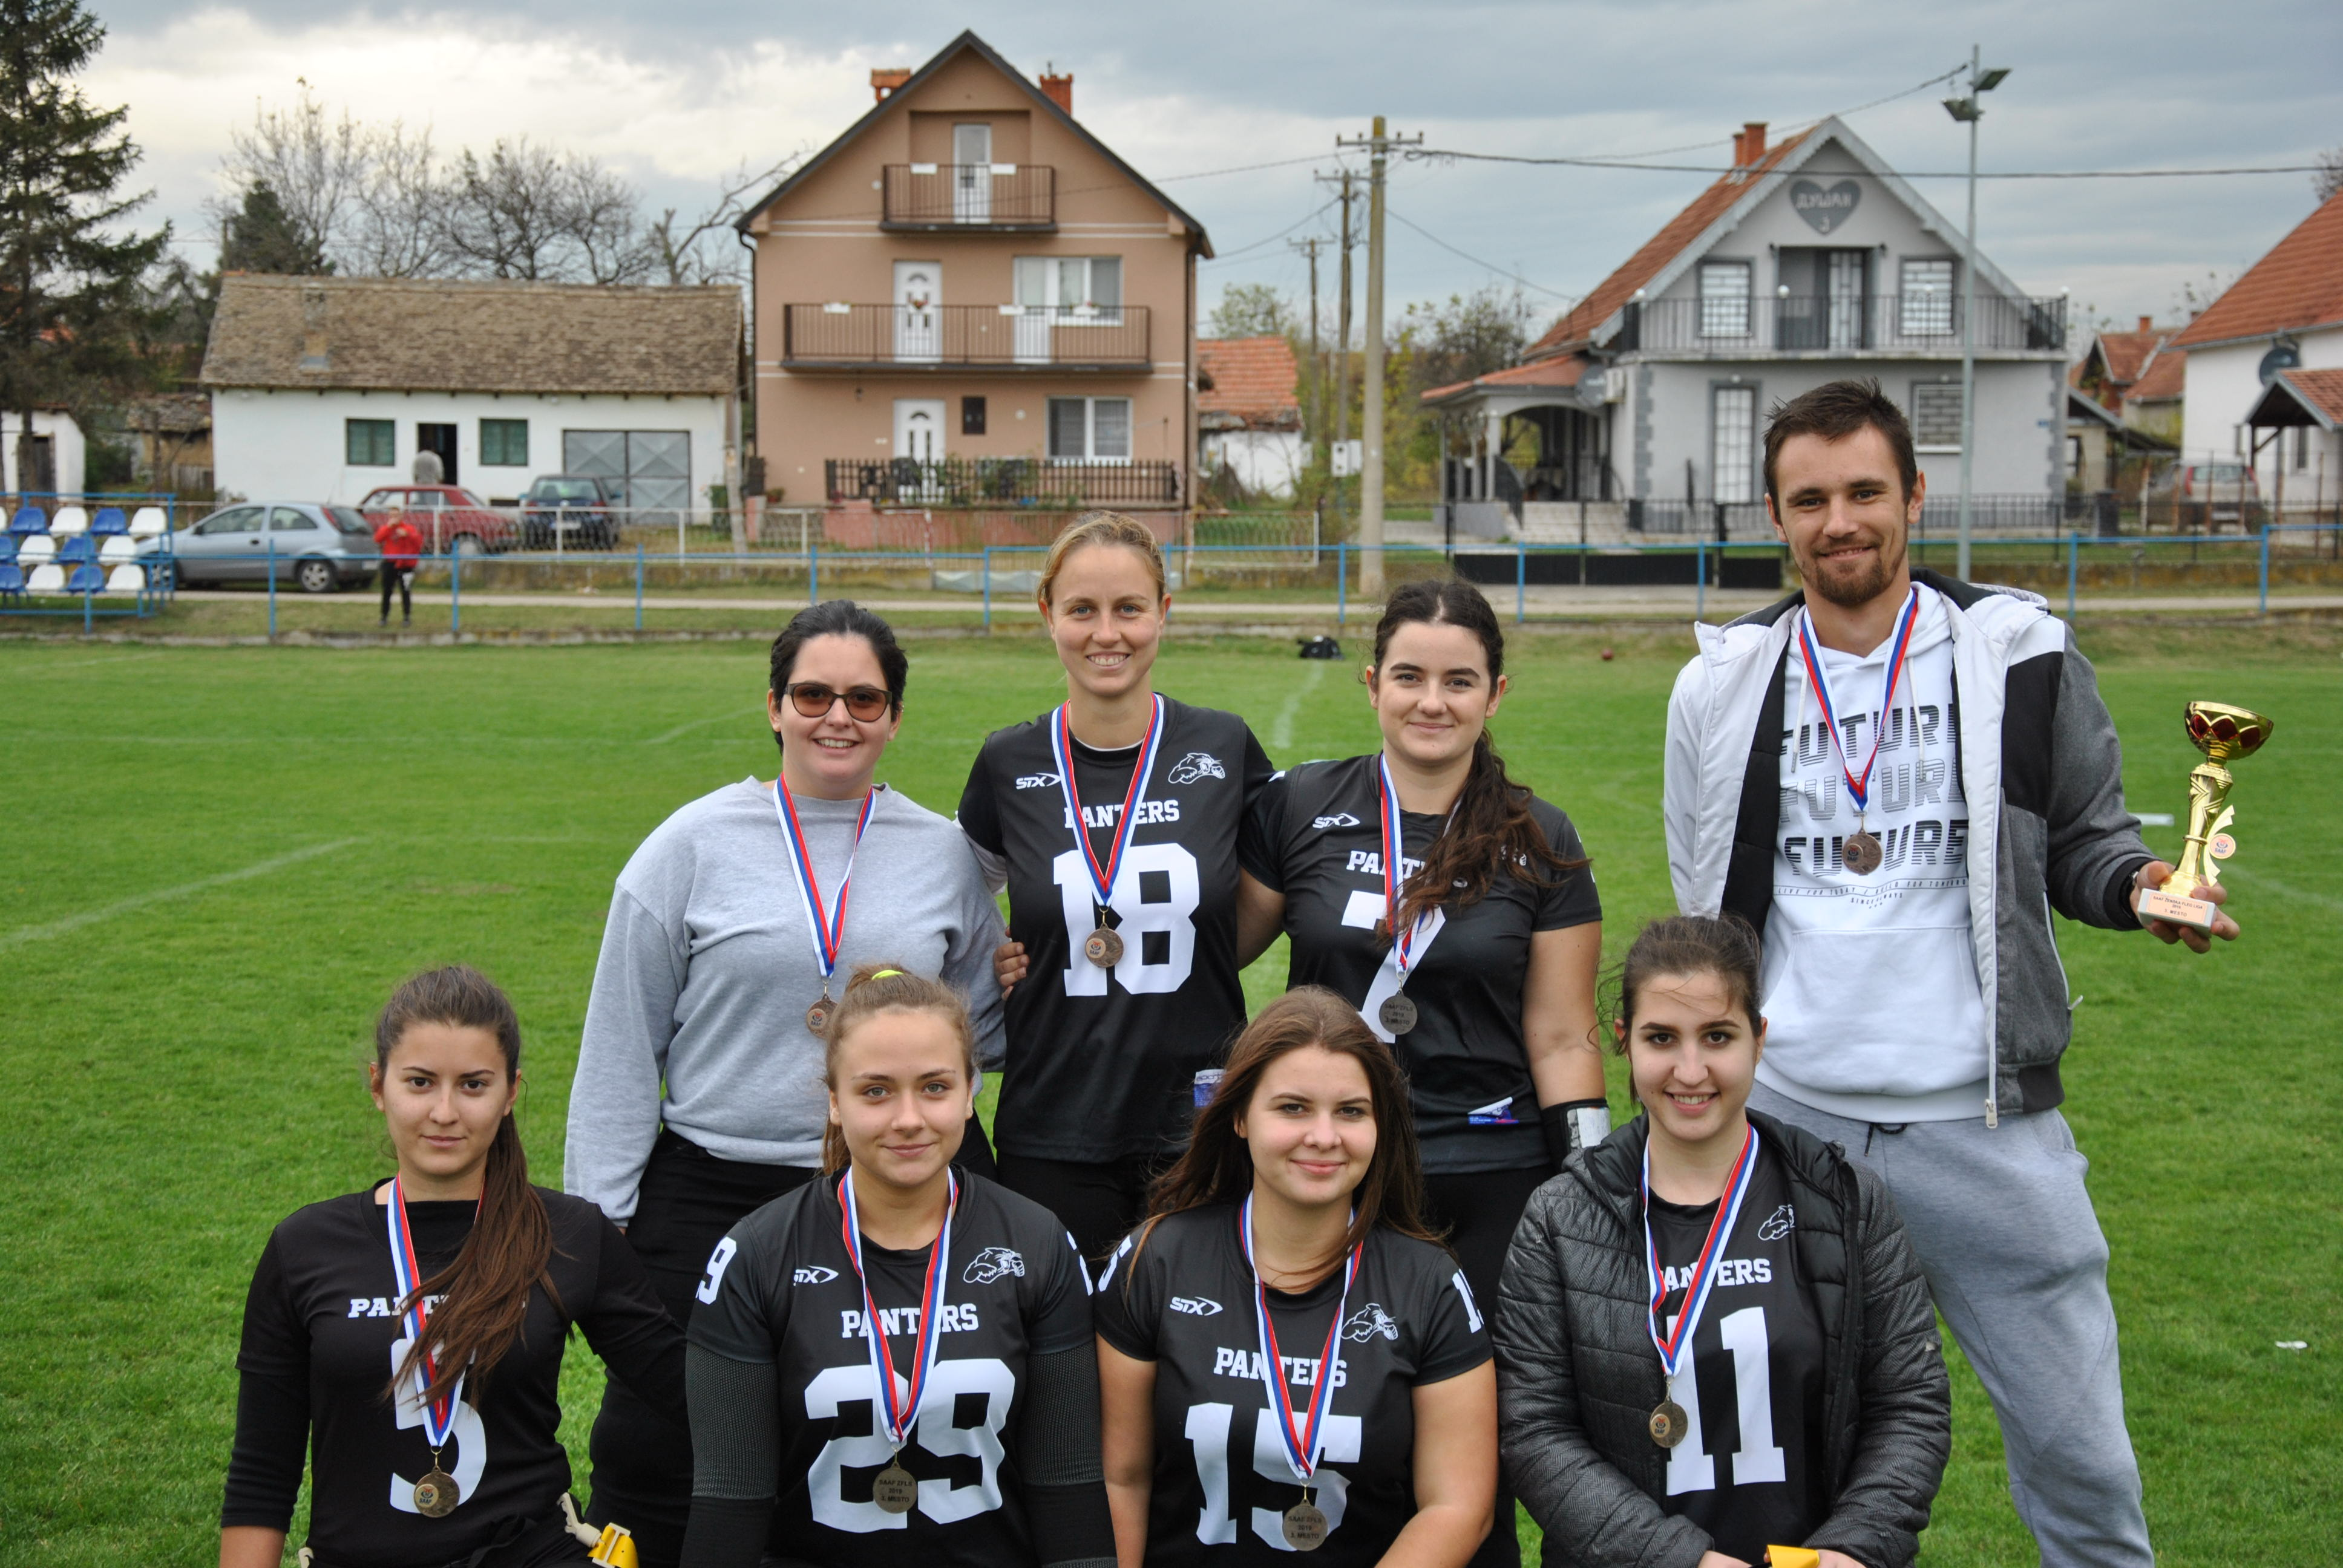 Pančevo Panthers Ladies